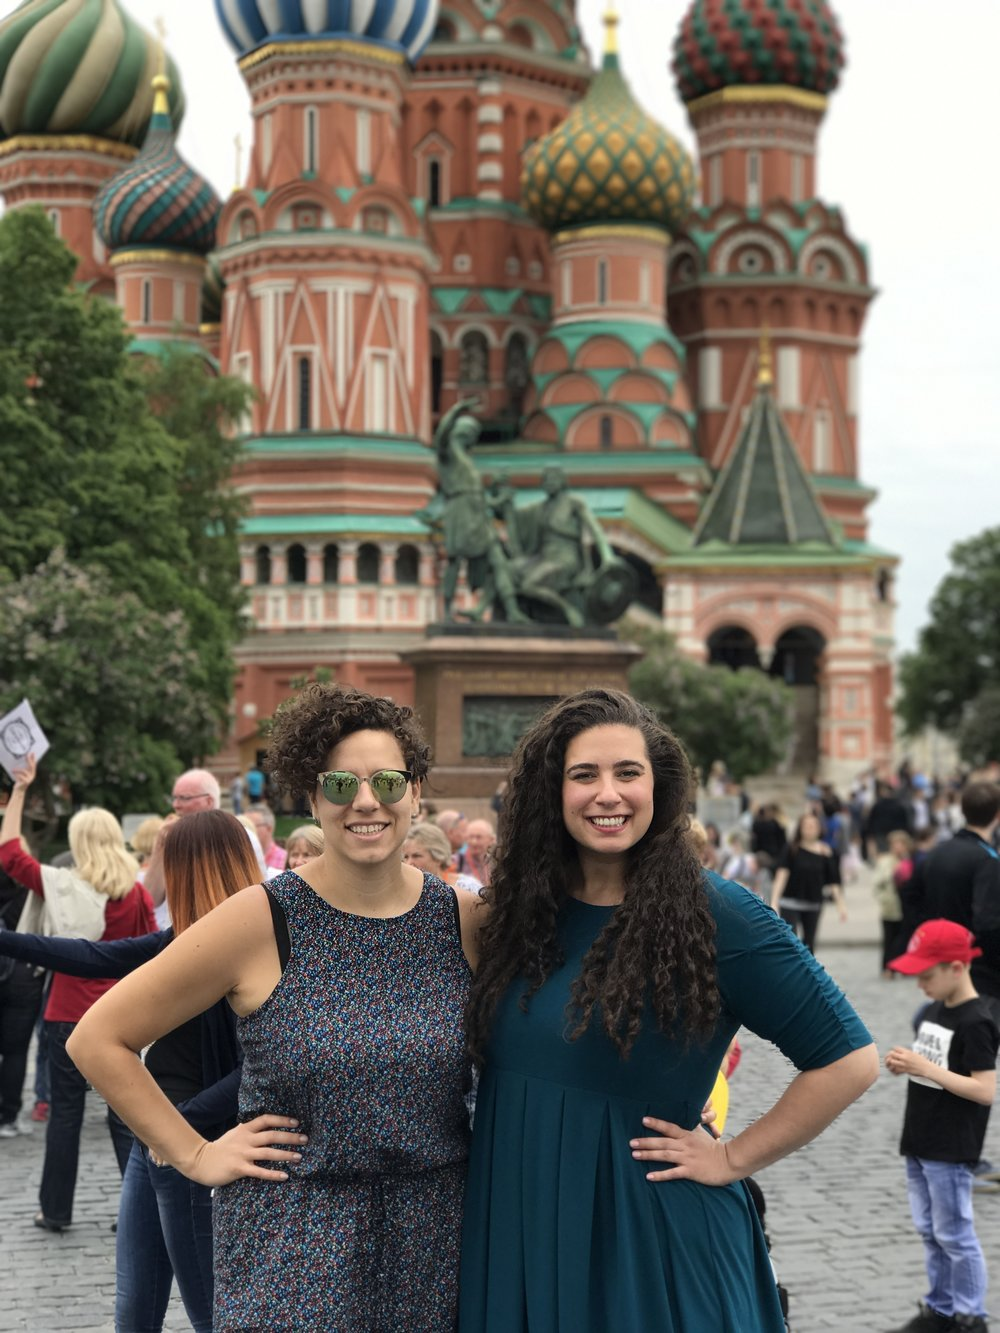 We're Jackie + Daryl. - Welcome to our blog! Travel enables us to learn more about ourselves as we navigate the world around us. By sharing our experiences as a same-sex couple, we aspire to inspire the LGBTQ+ community and beyond to grow by exploring their world. Enjoy!